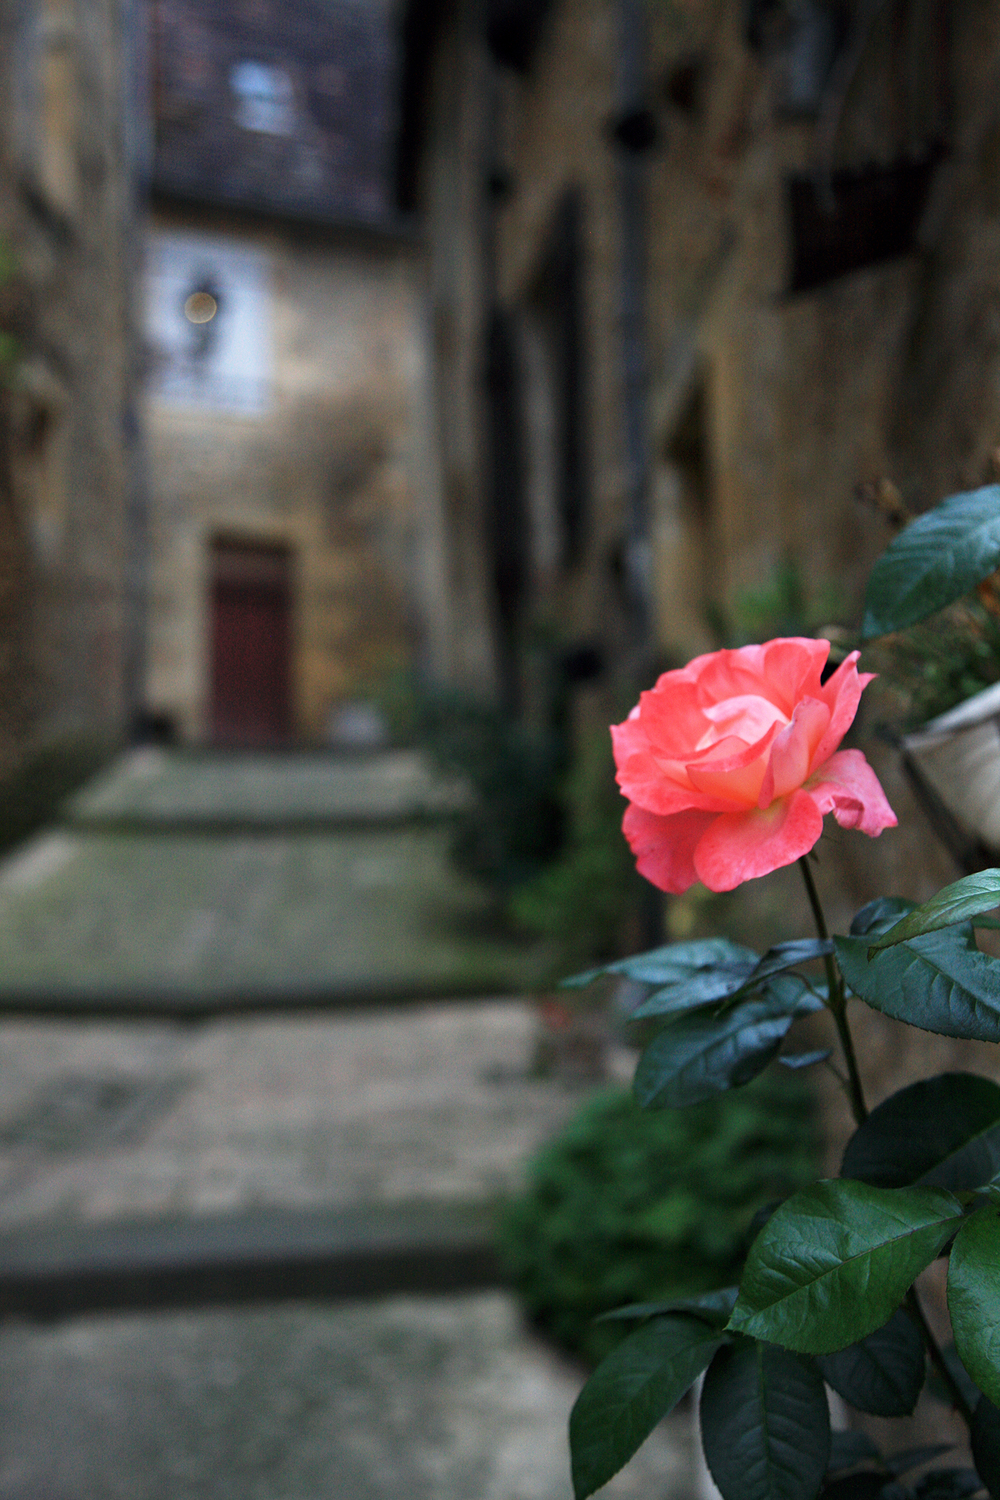 The Rose of Sarlat